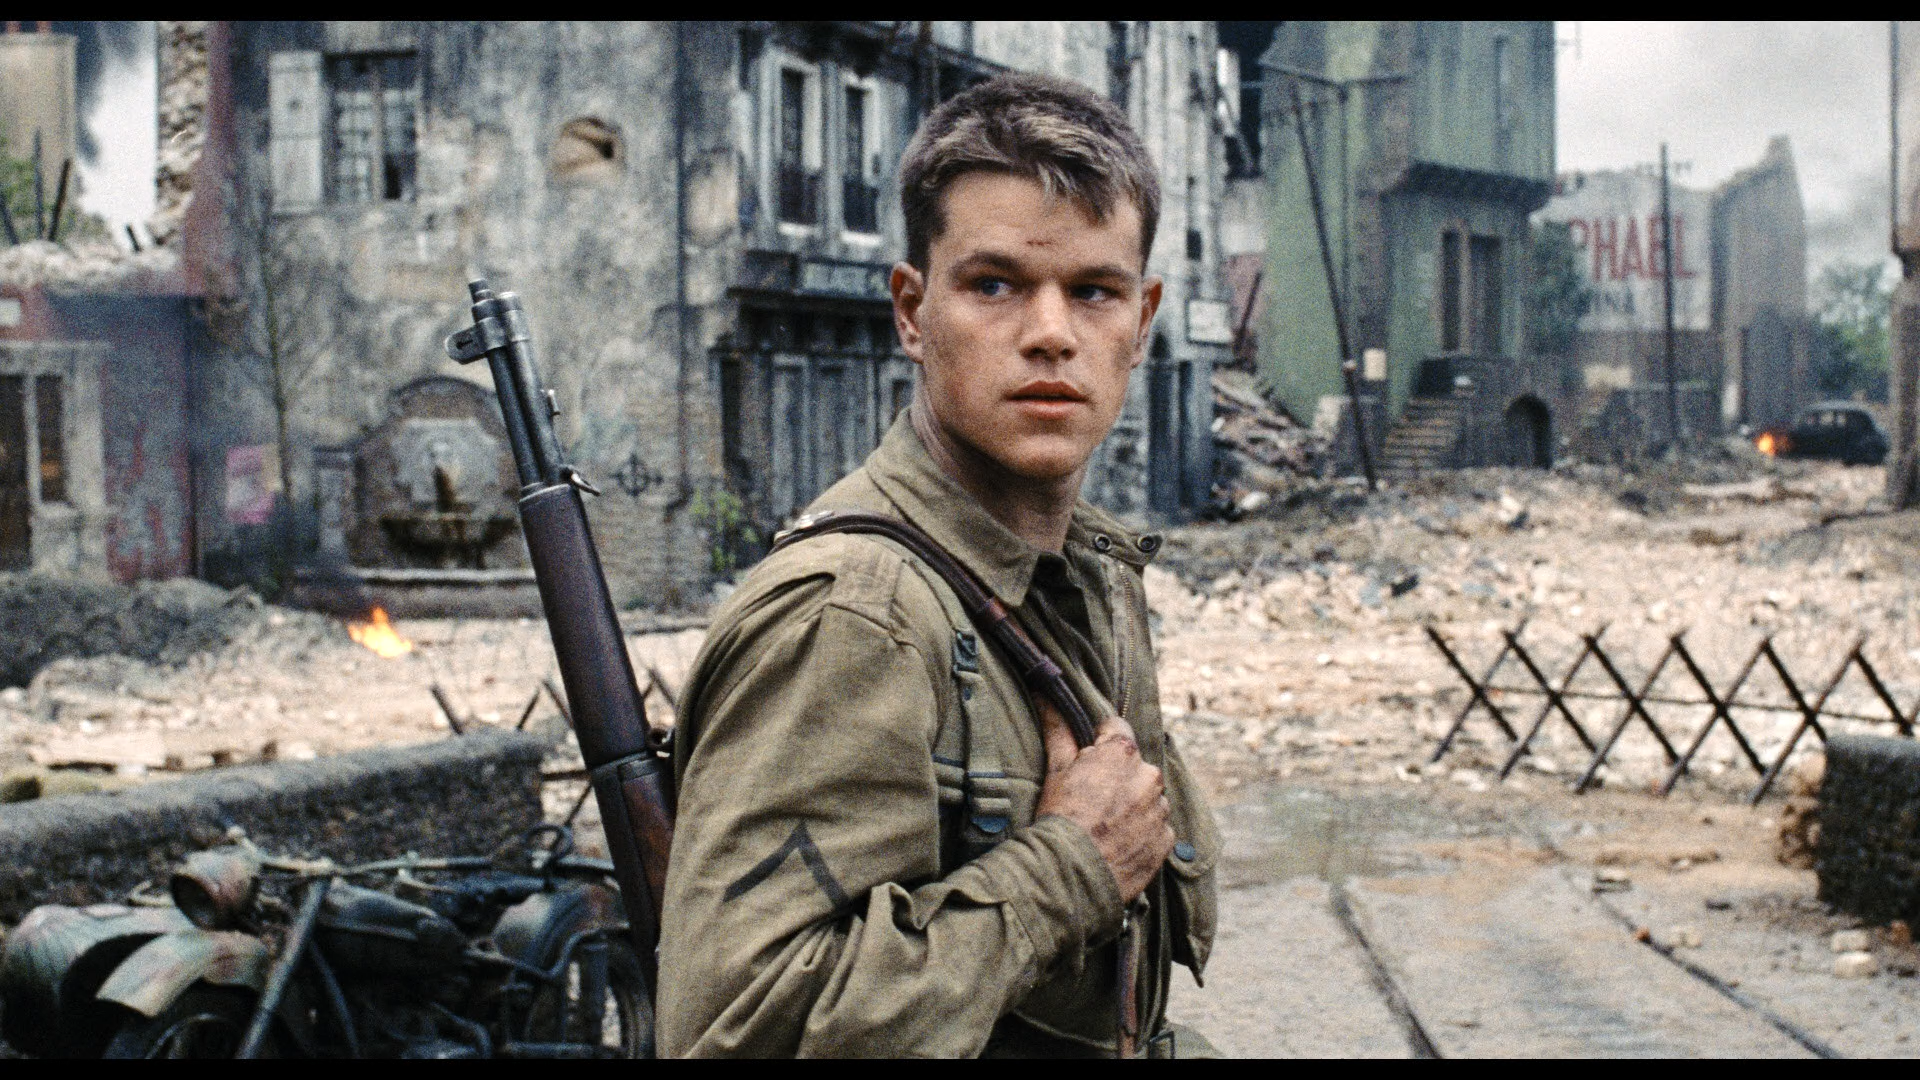 an introduction to the analysis of the film saving private ryan Context this line is spoken by captain james miller, played by tom hanks in the film saving private ryan, directed by steven spielberg (1998) it doesn't look good for wwii captain james miller.